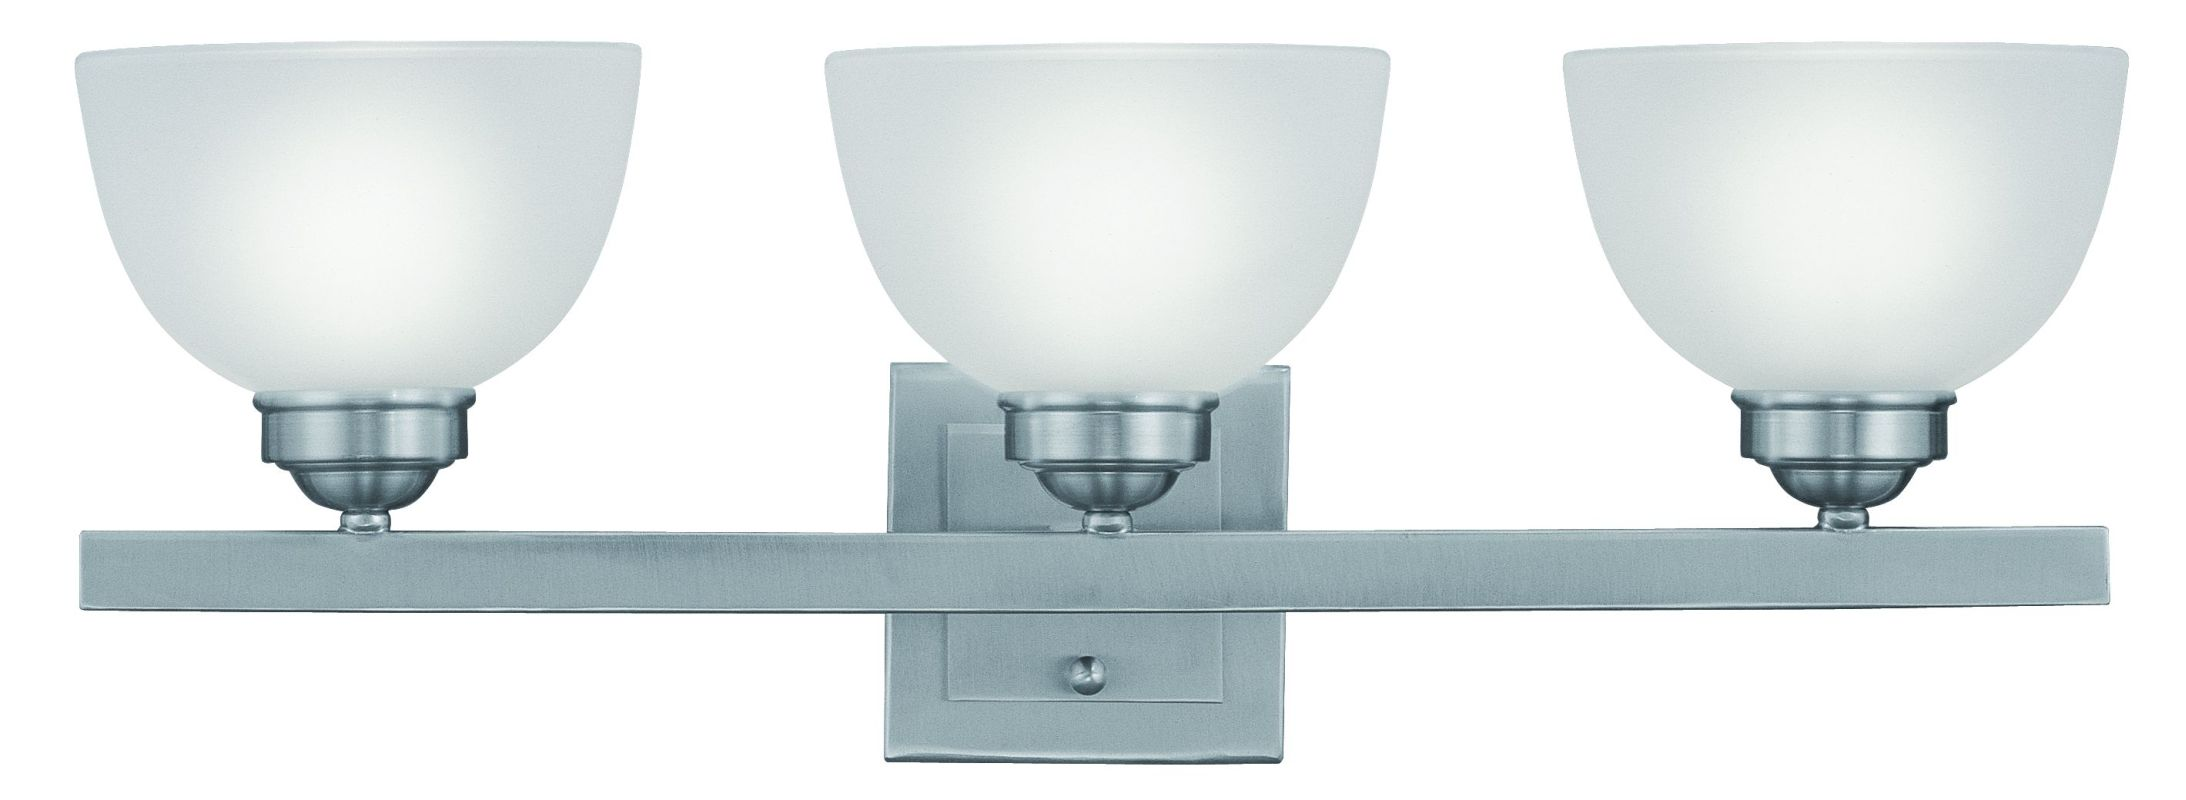 "Livex Lighting 4203 3 Light 300 Watt 24.75"" Wide Bathroom Fixture with"